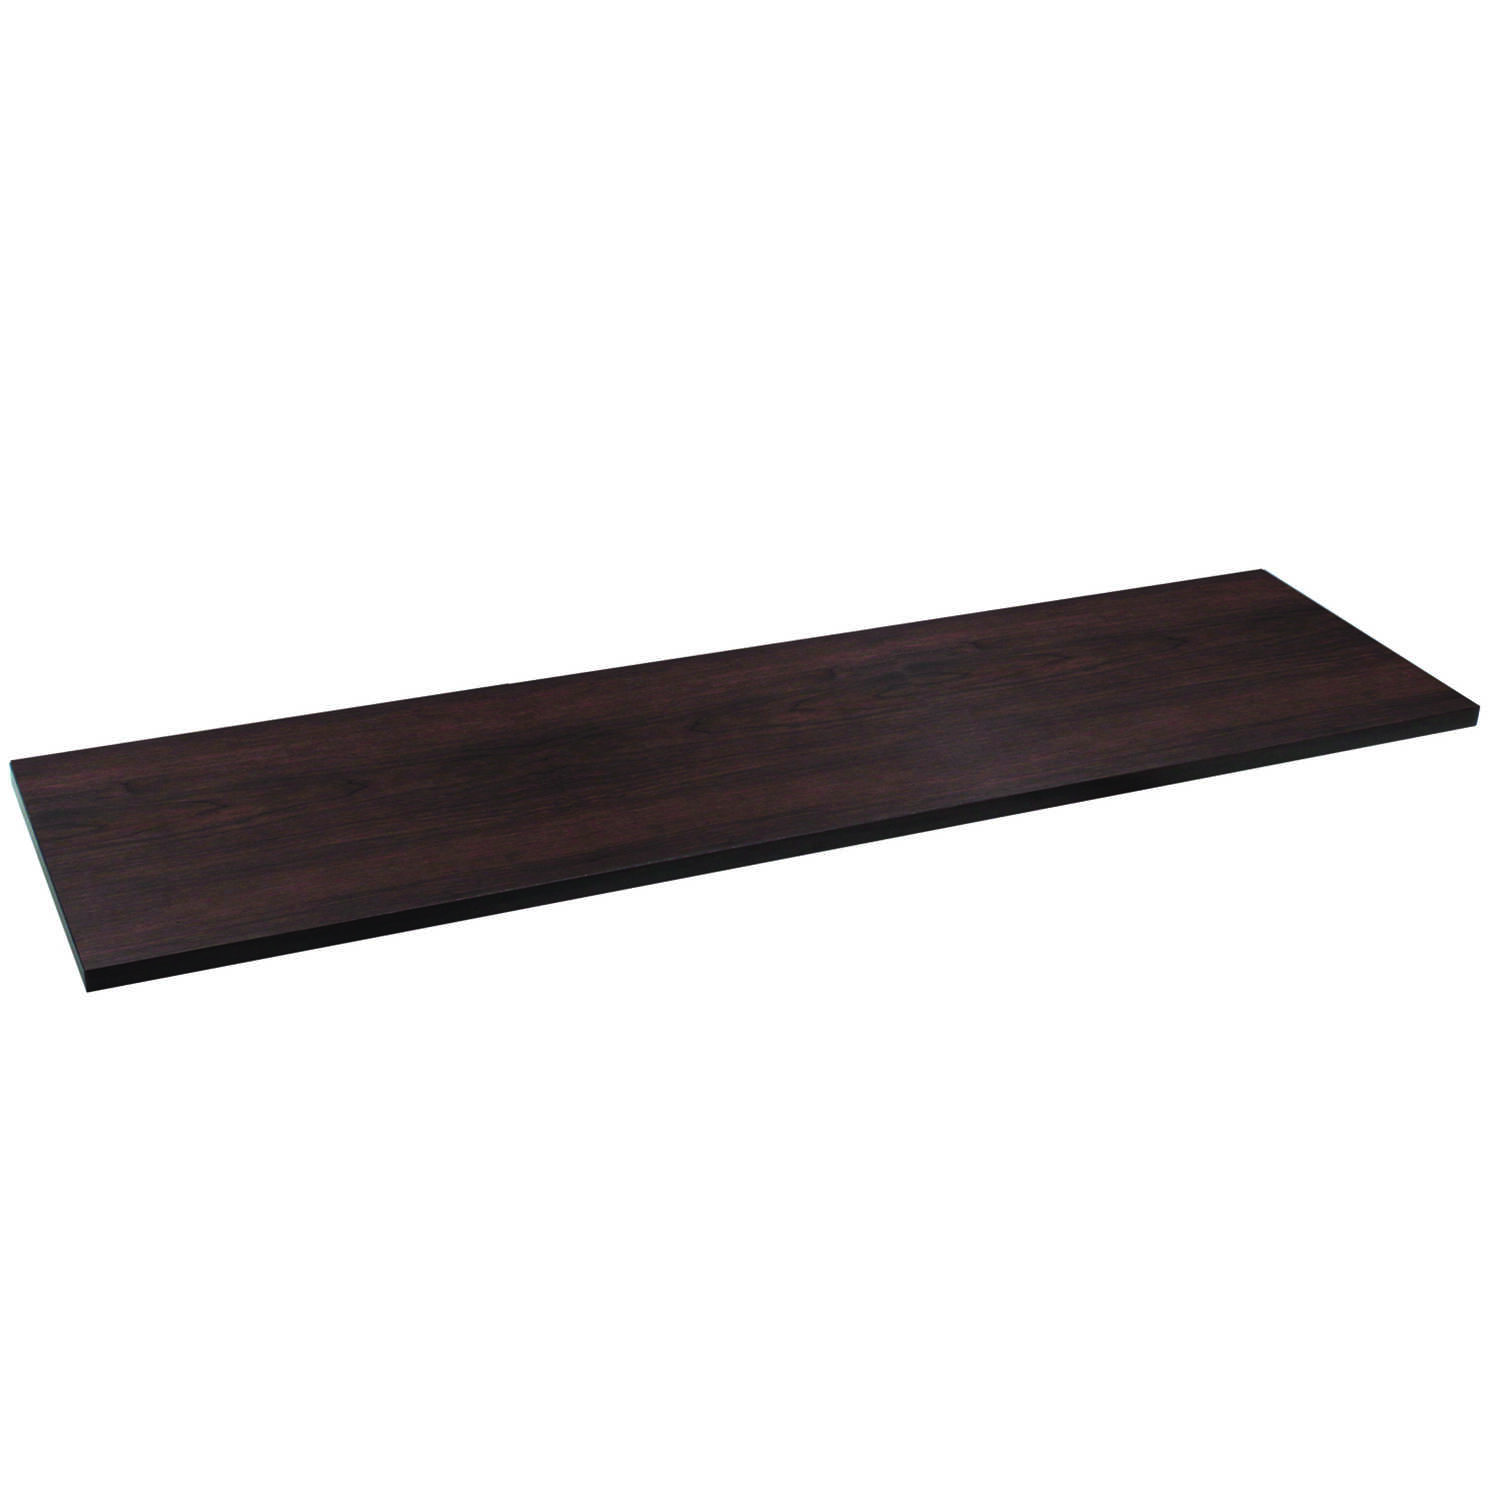 Knape & Vogt  12 in. W x 5/8 in. H x 48 in. D Espresso  Particle Board  Shelf